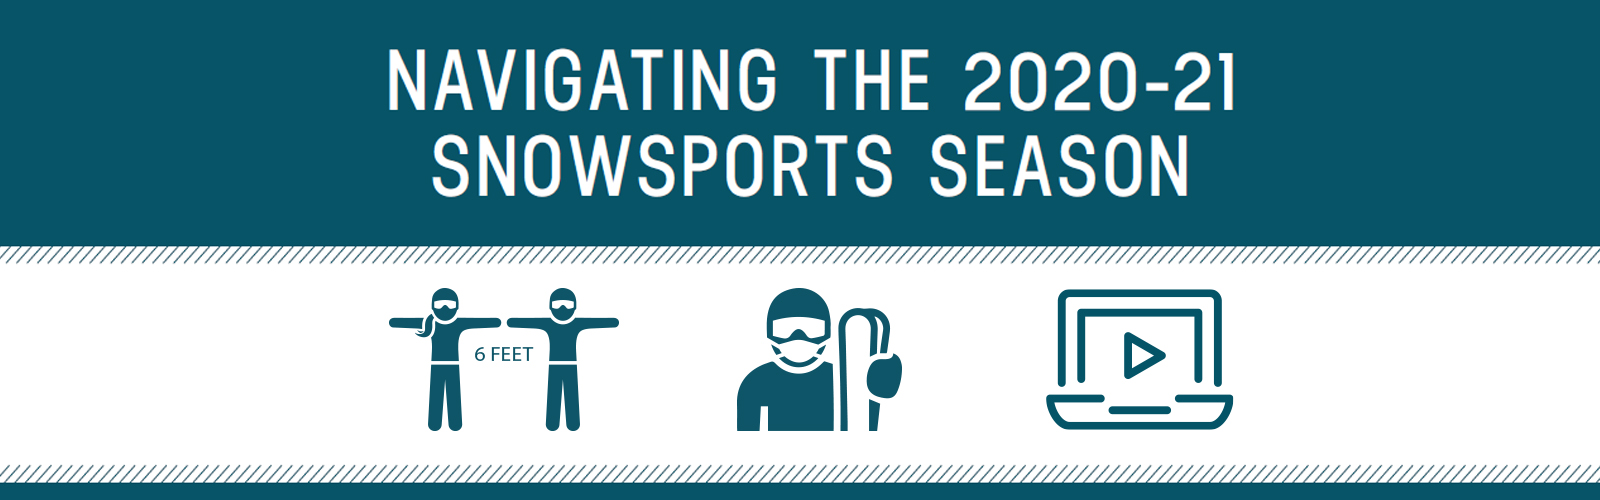 PSIA-AASI's document for Nagivation the 2020-21 Snowsports Season